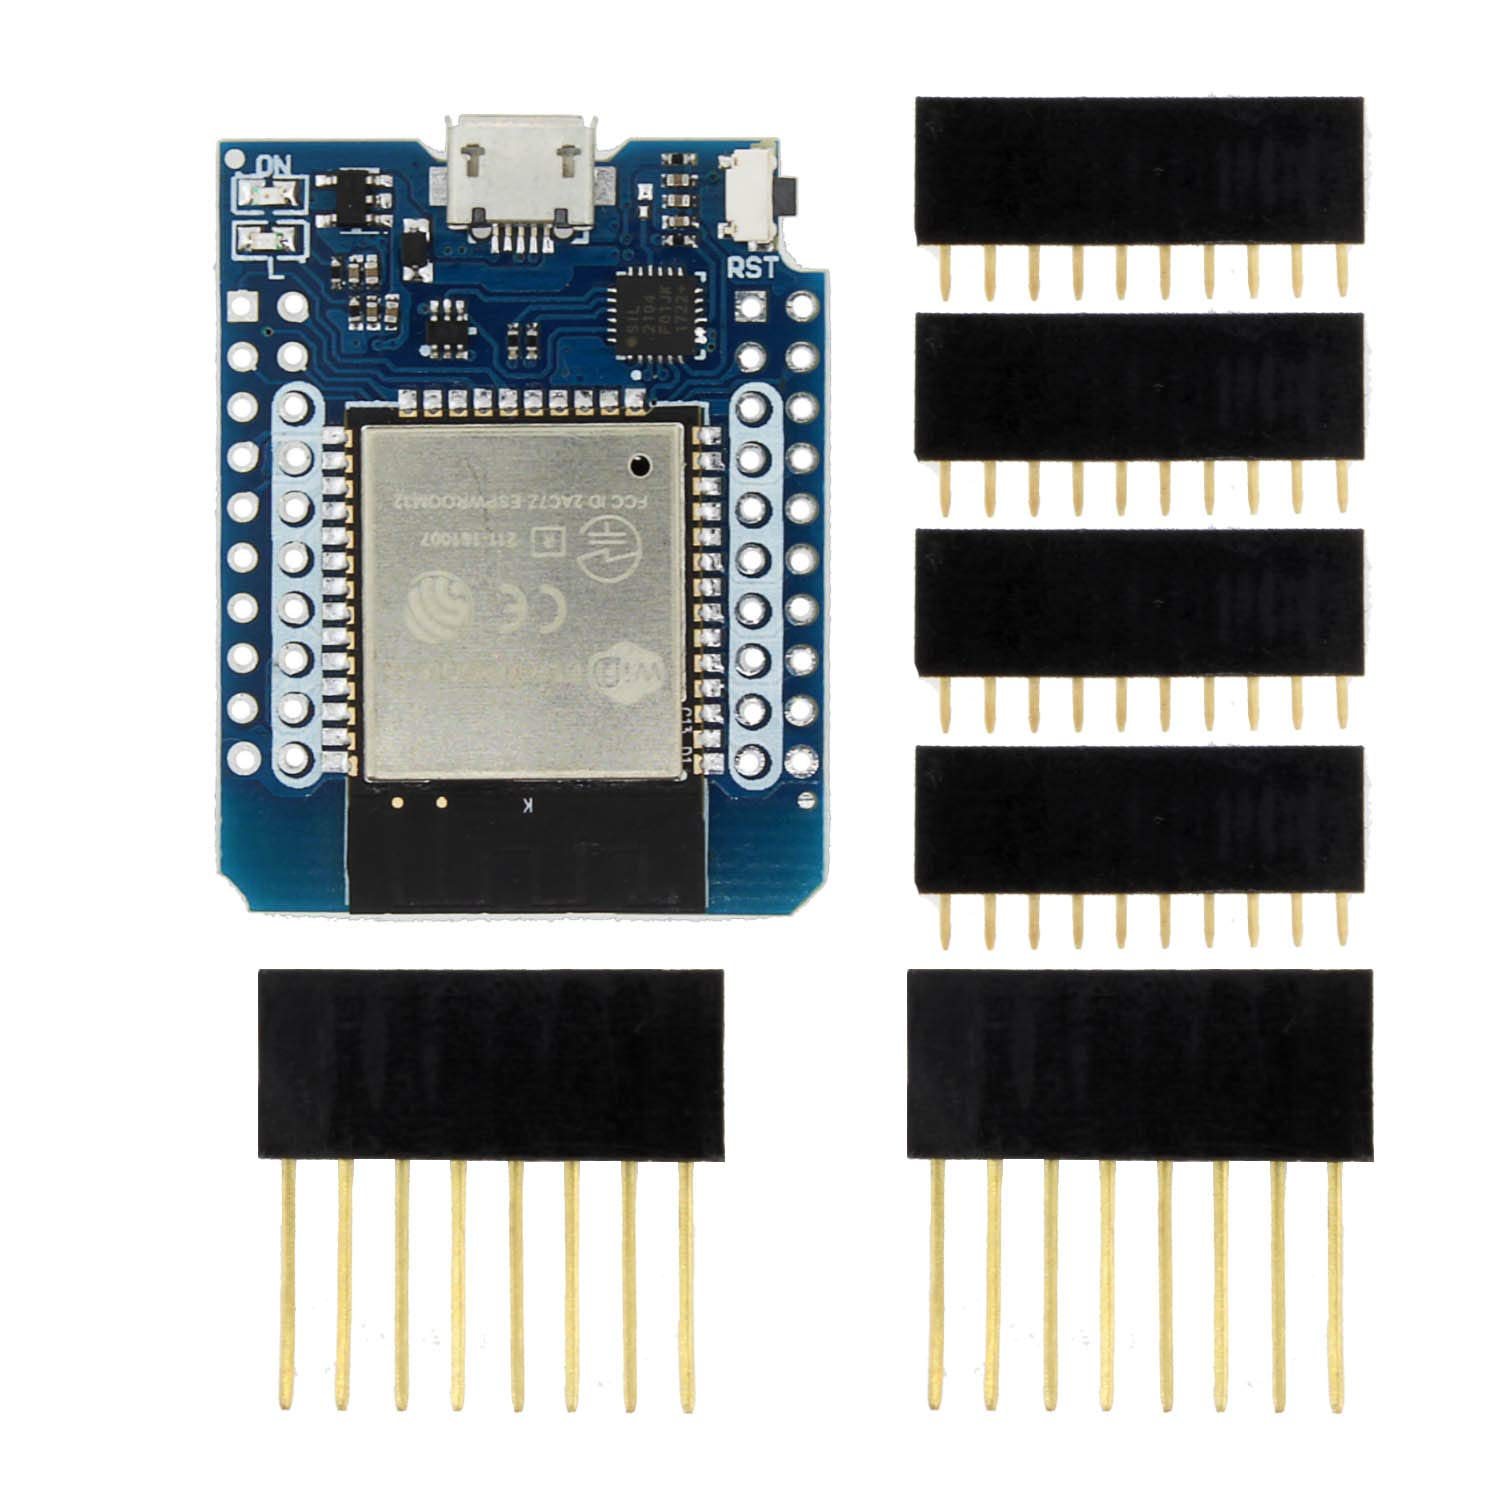 Nrthtri Module D1 Mini ESP-32 WiFi+Bluetooth Internet of Things Development Board Based ESP8266 Fully Functional LDTR-WG0202 by Nrthtri